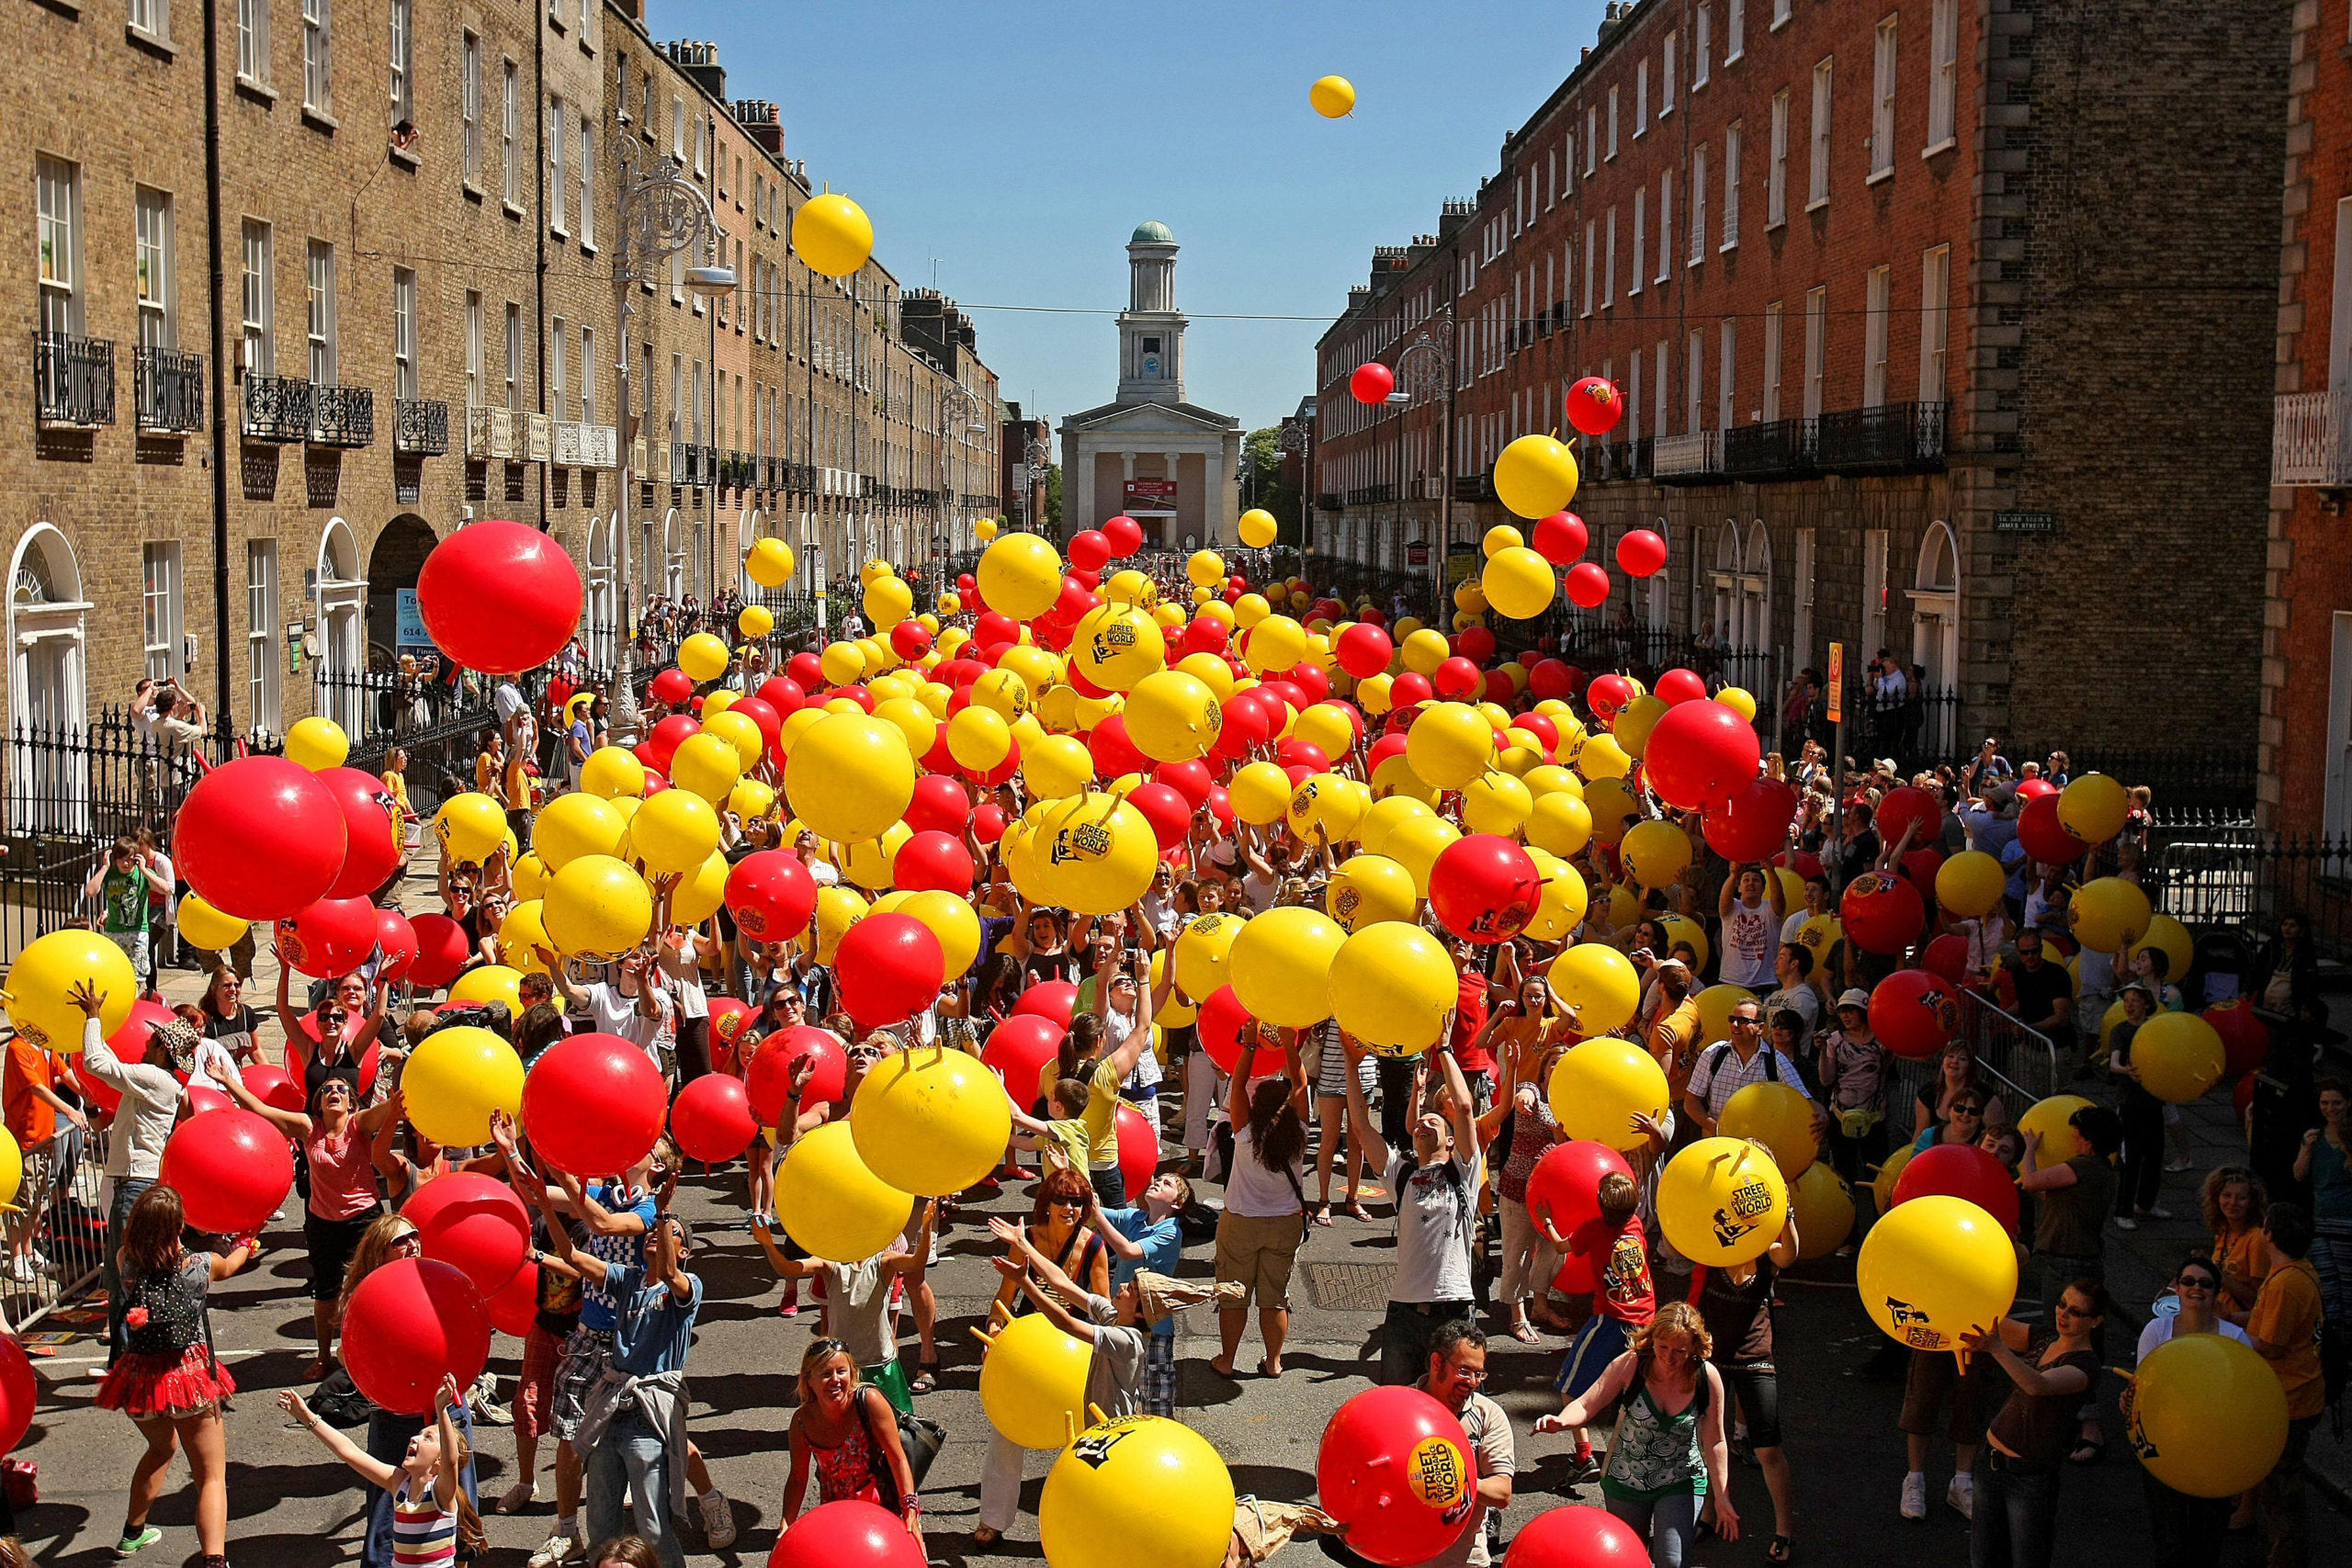 Space Hoppers, on Merrion Square in Dublin.